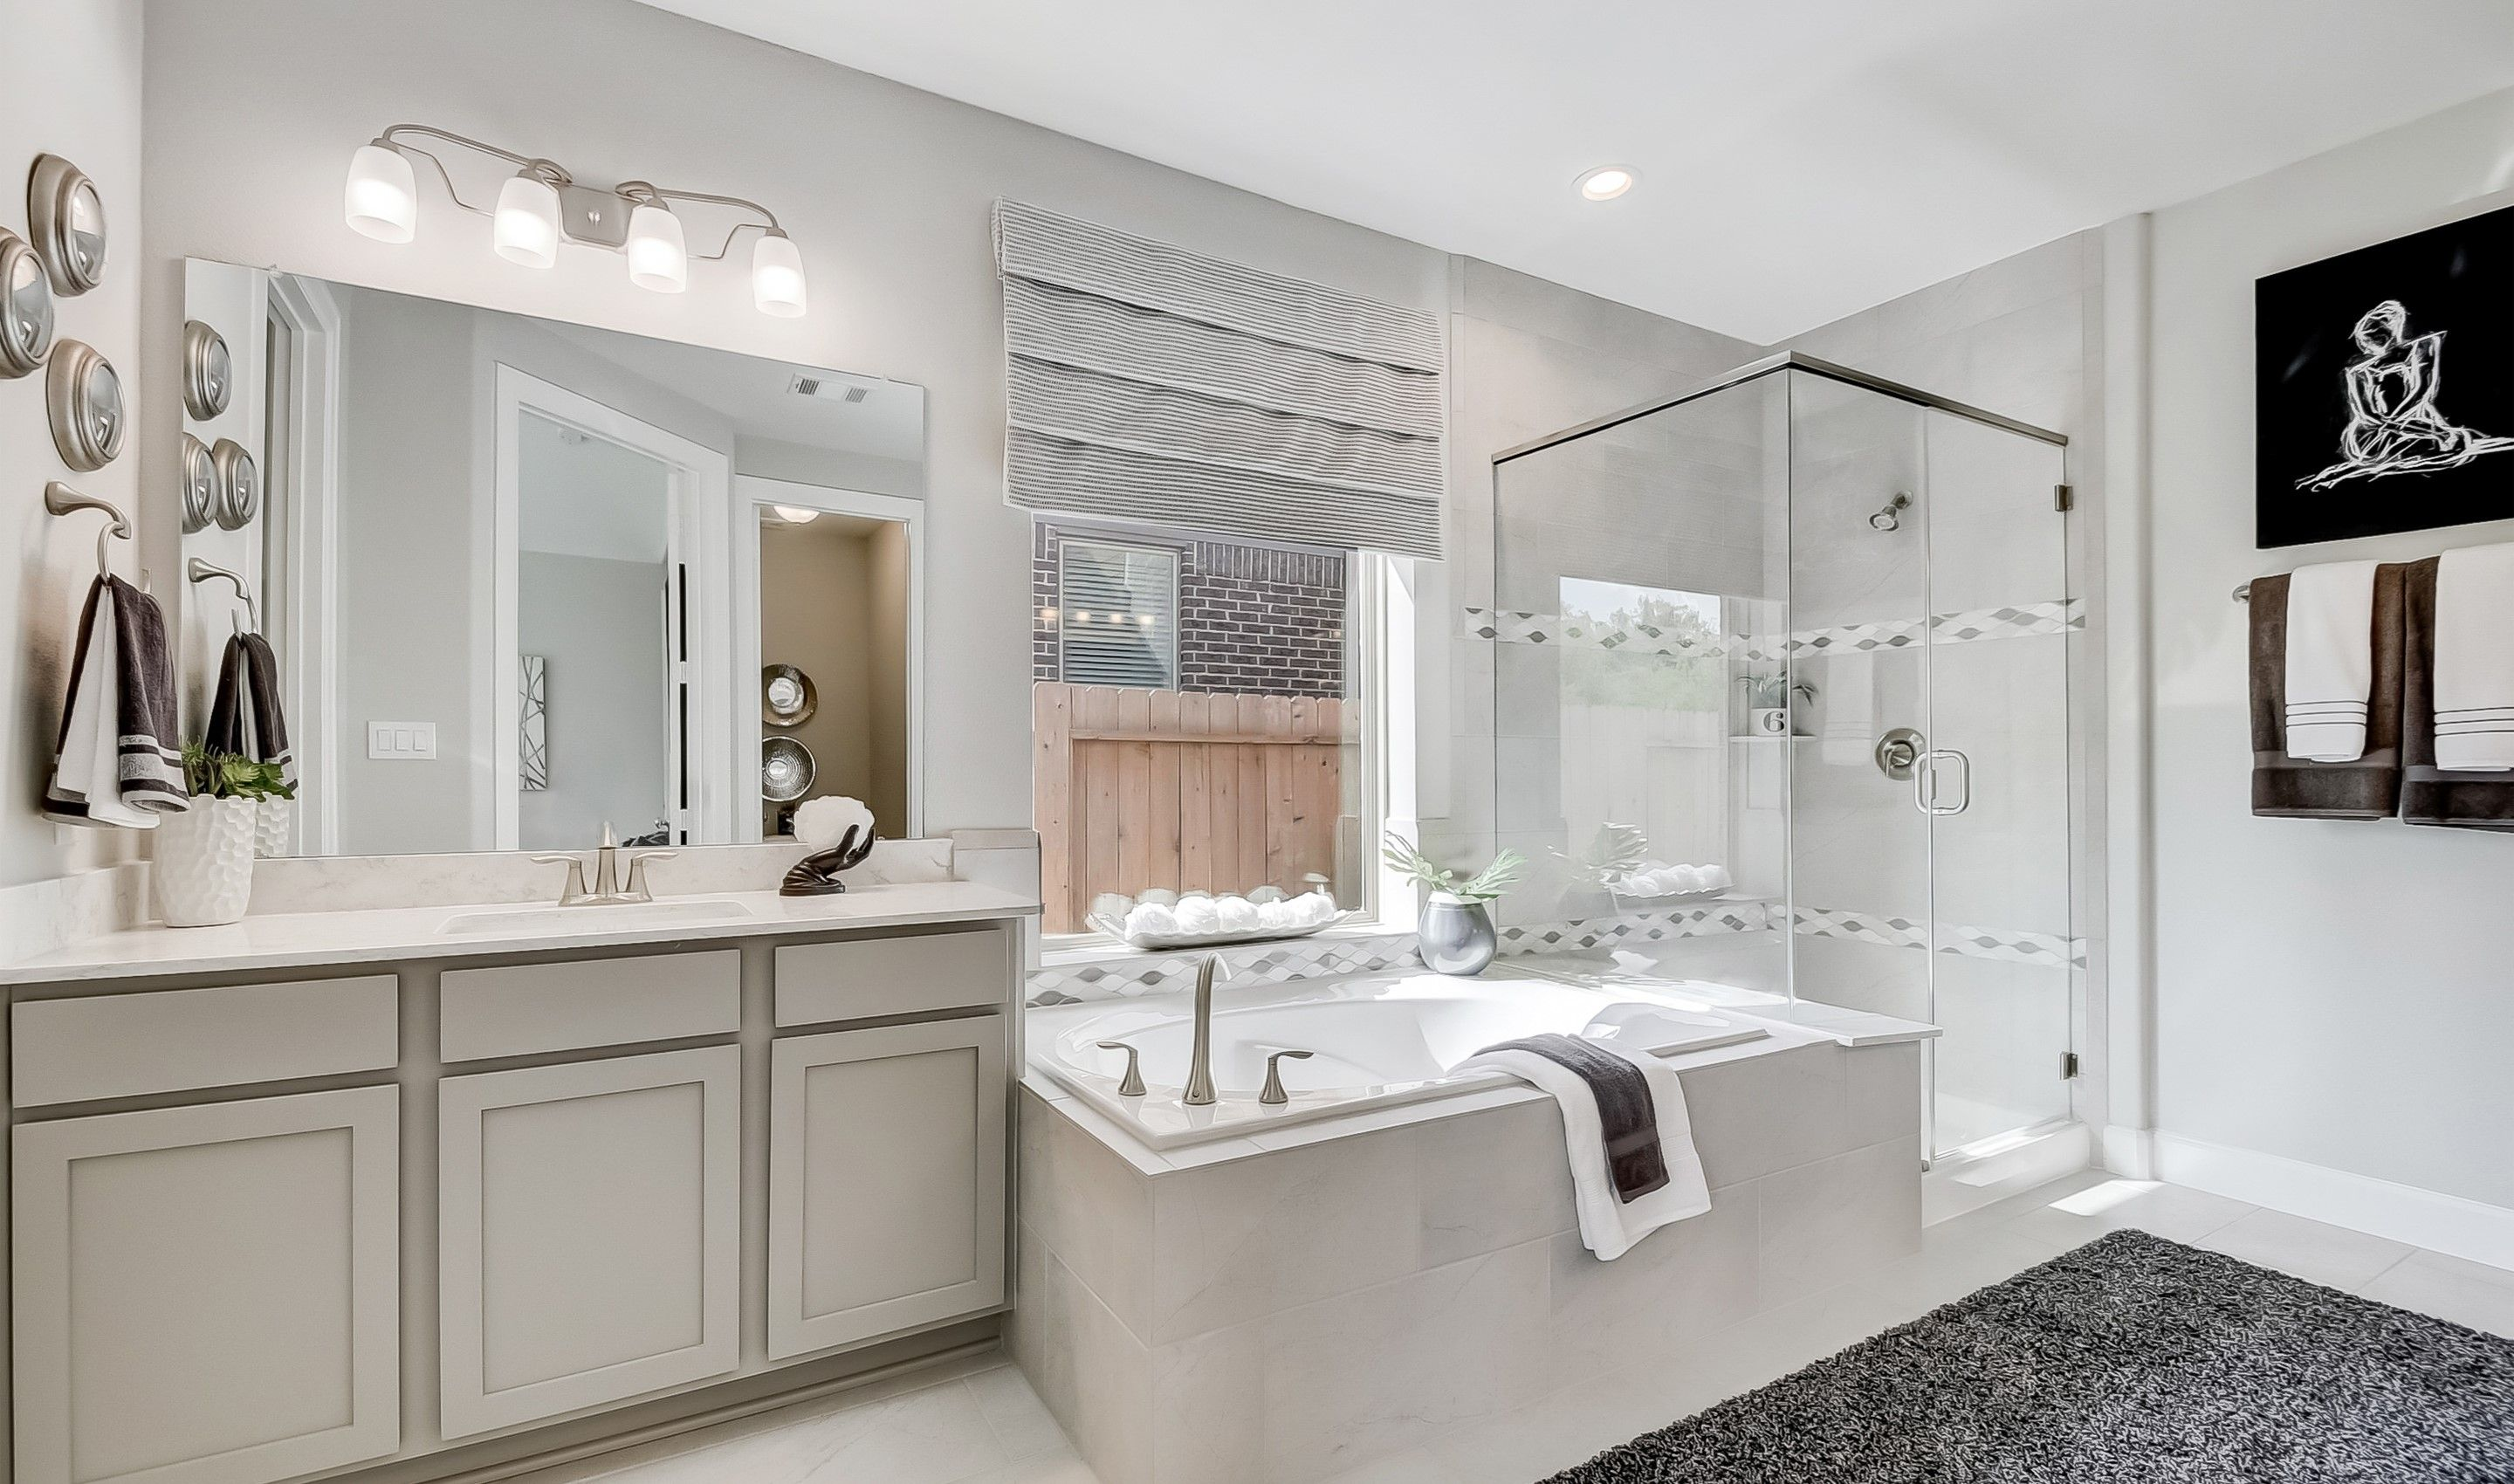 Bathroom featured in the Clarendon By K. Hovnanian® Homes in Houston, TX